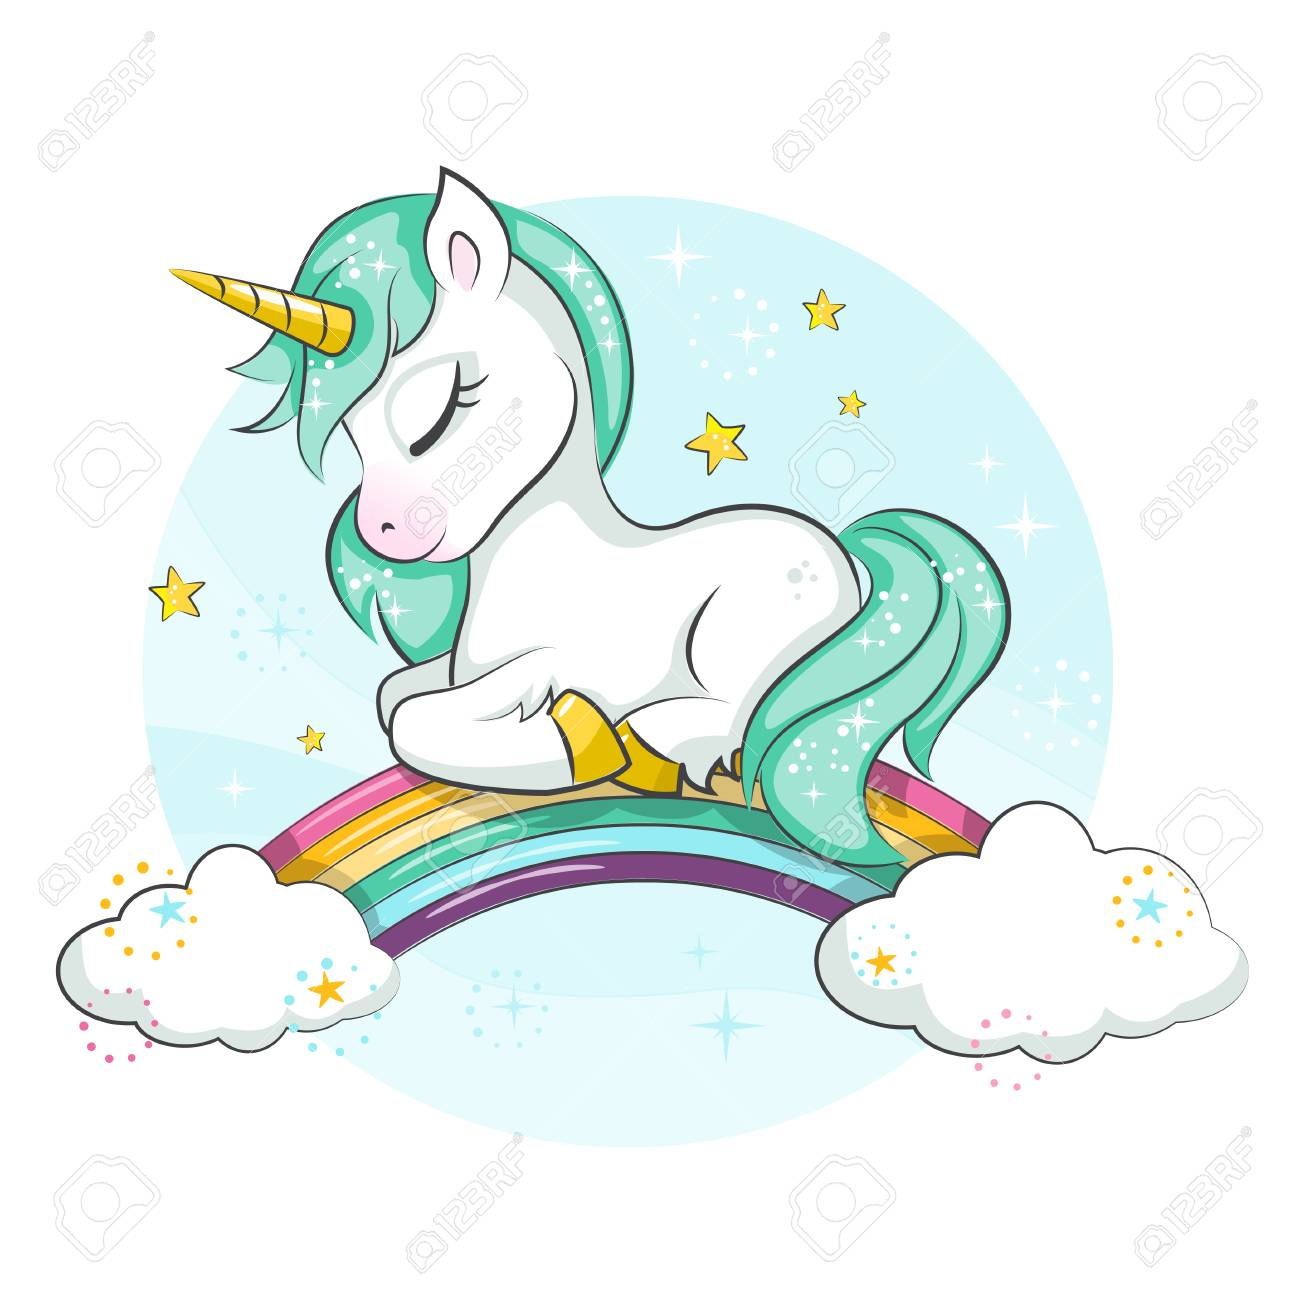 Cute magical unicorn. Little pony. Cute magical unicorn and rainbow. Vector design isolated on white background. Print for t-shirt or sticker. Romantic hand drawing illustration for children. - 97411824